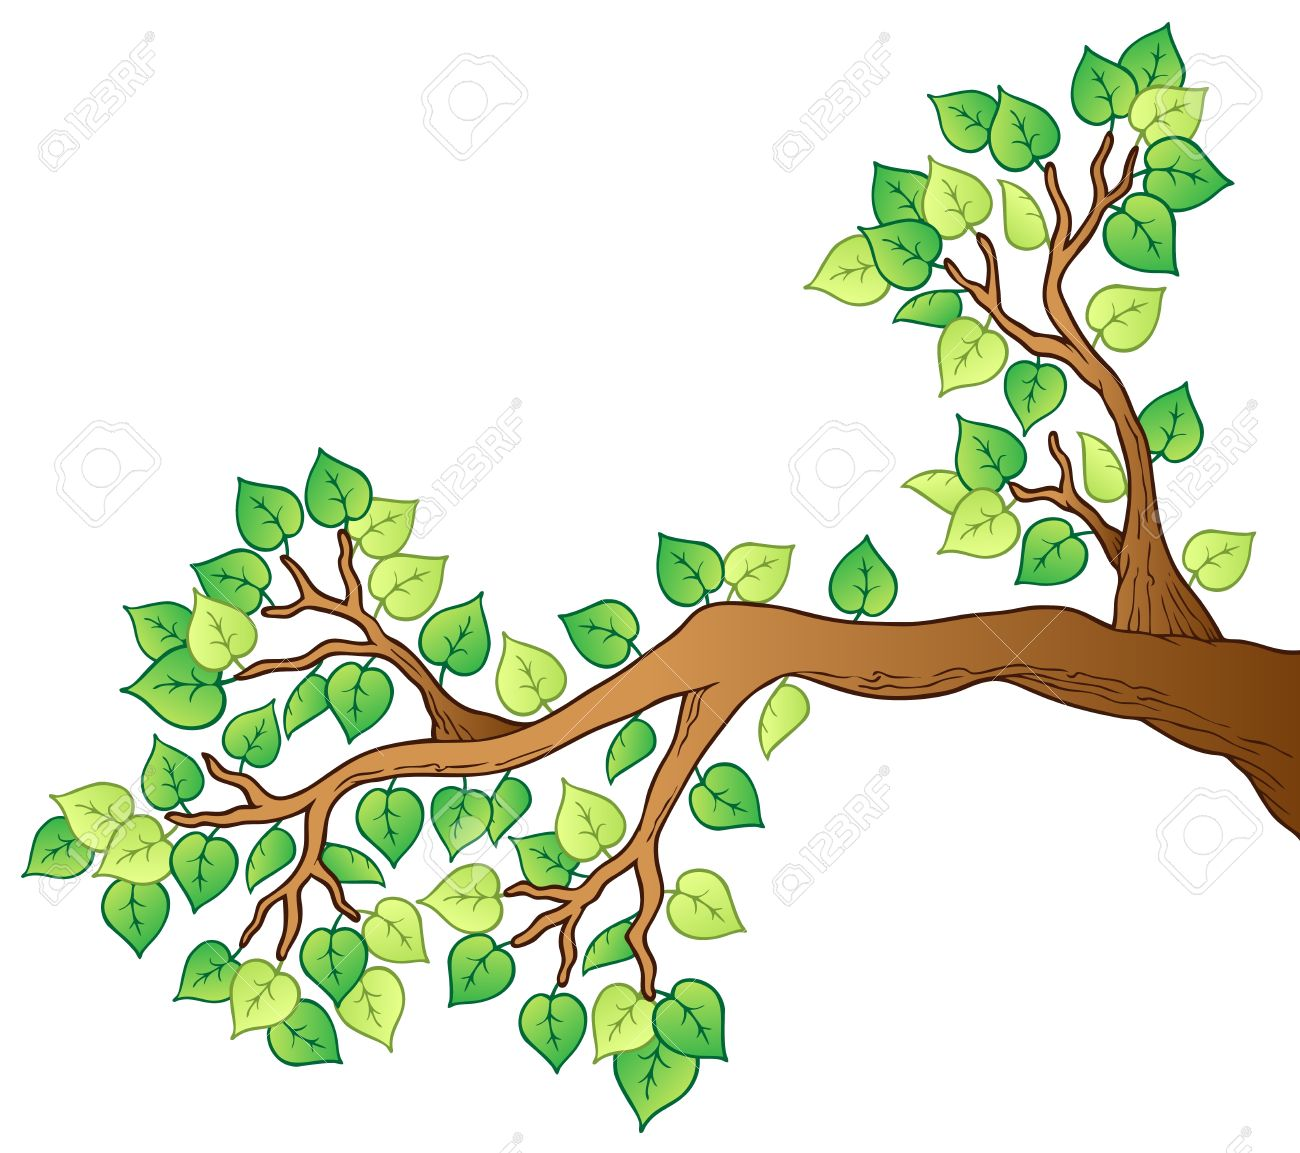 cartoon tree branch with leaves 1 vector illustration royalty